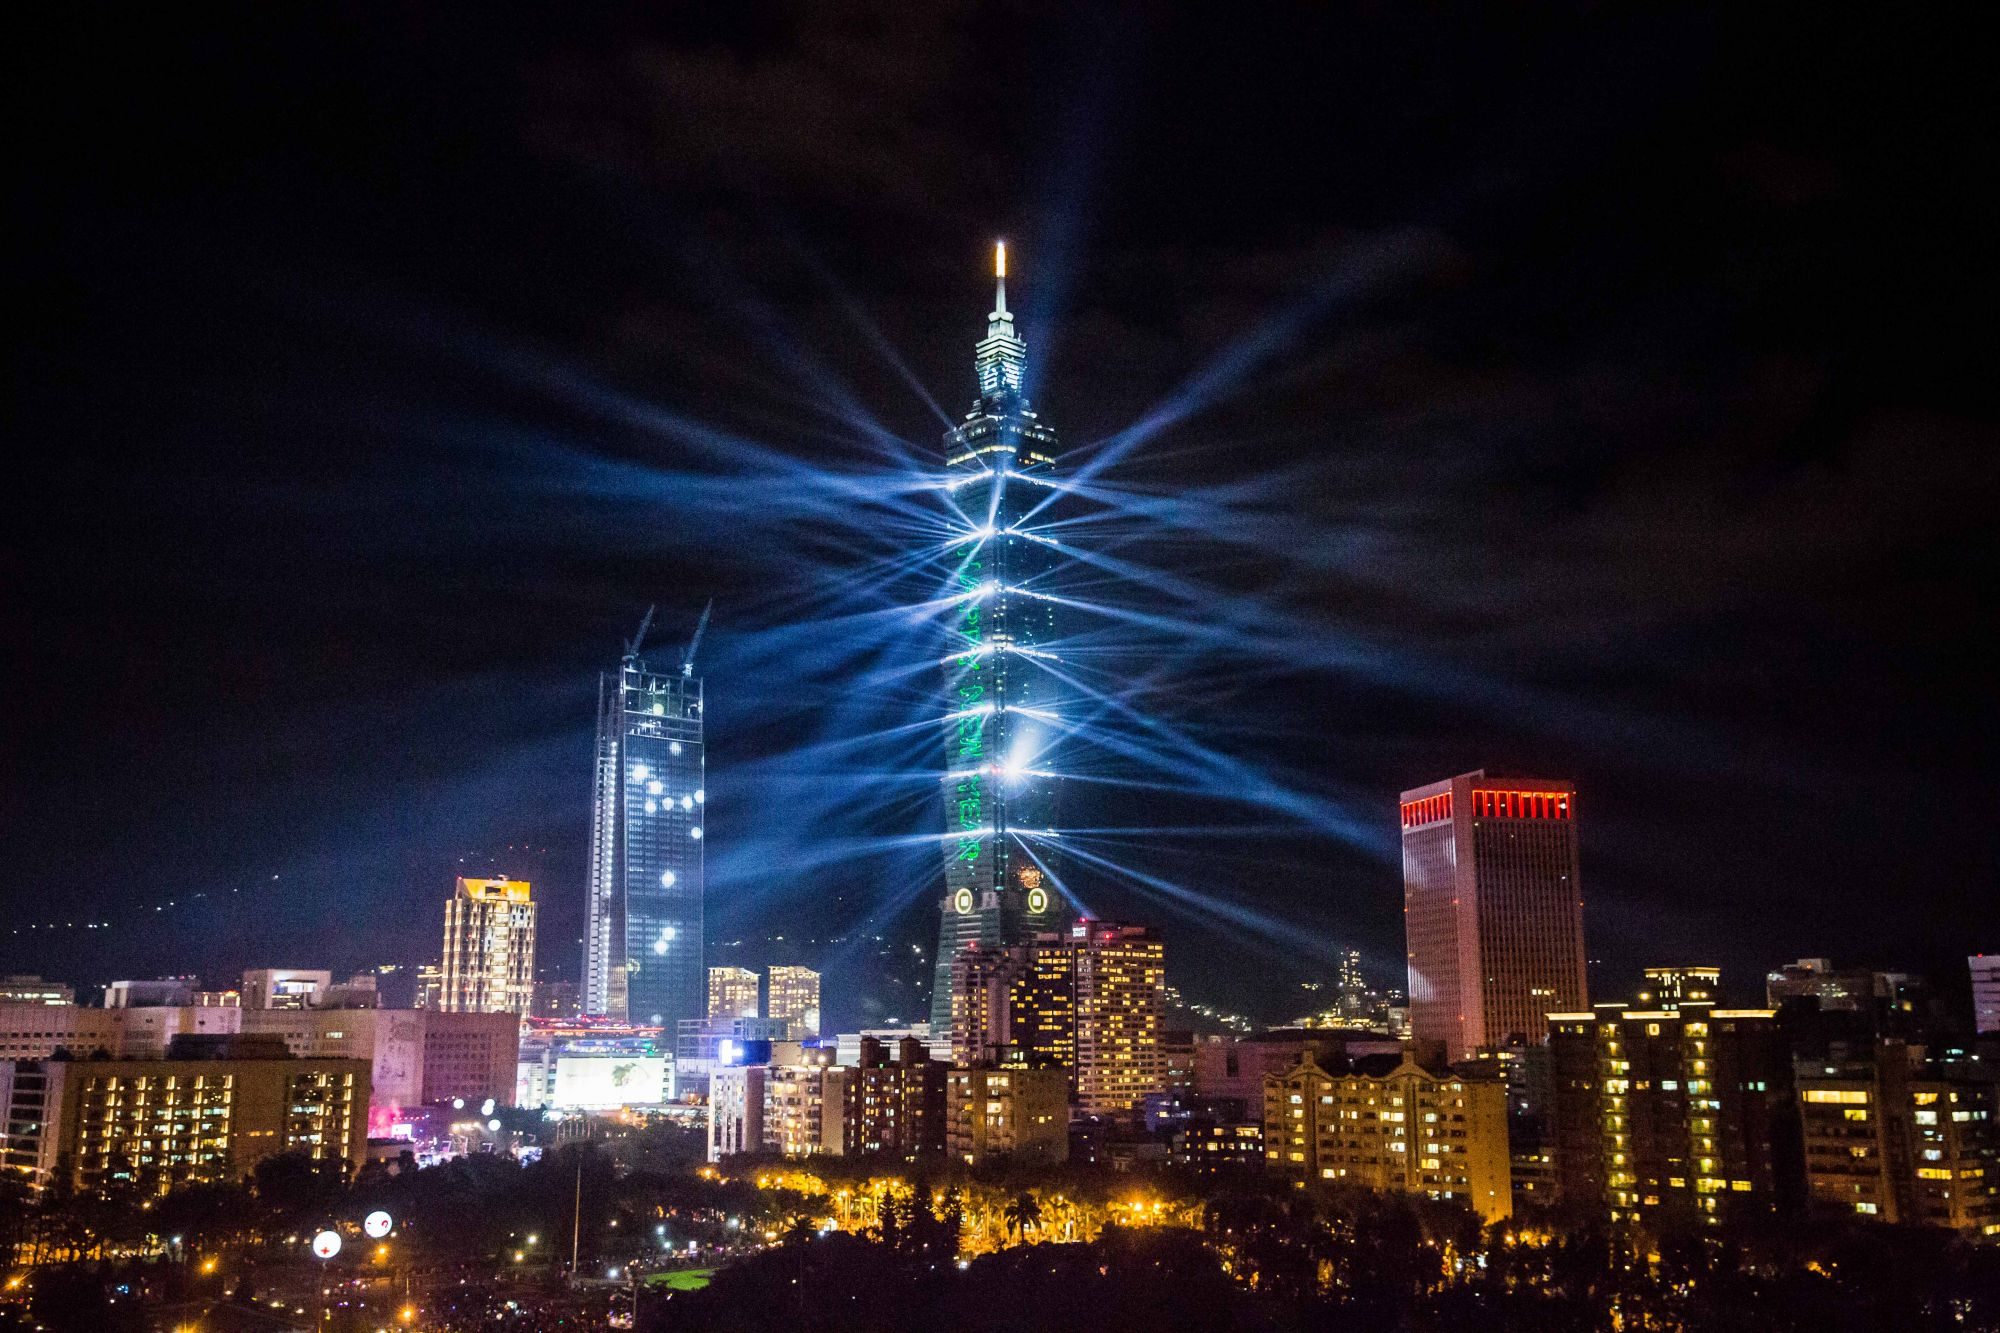 TAIPEI, TAIWAN - JANUARY 1:  Taipei 101 is lit up during New Years Eve celebrations just after midnight on January 1, 2017 in Taipei, Taiwan.  (Photo by Billy H.C. Kwok/Getty Images)